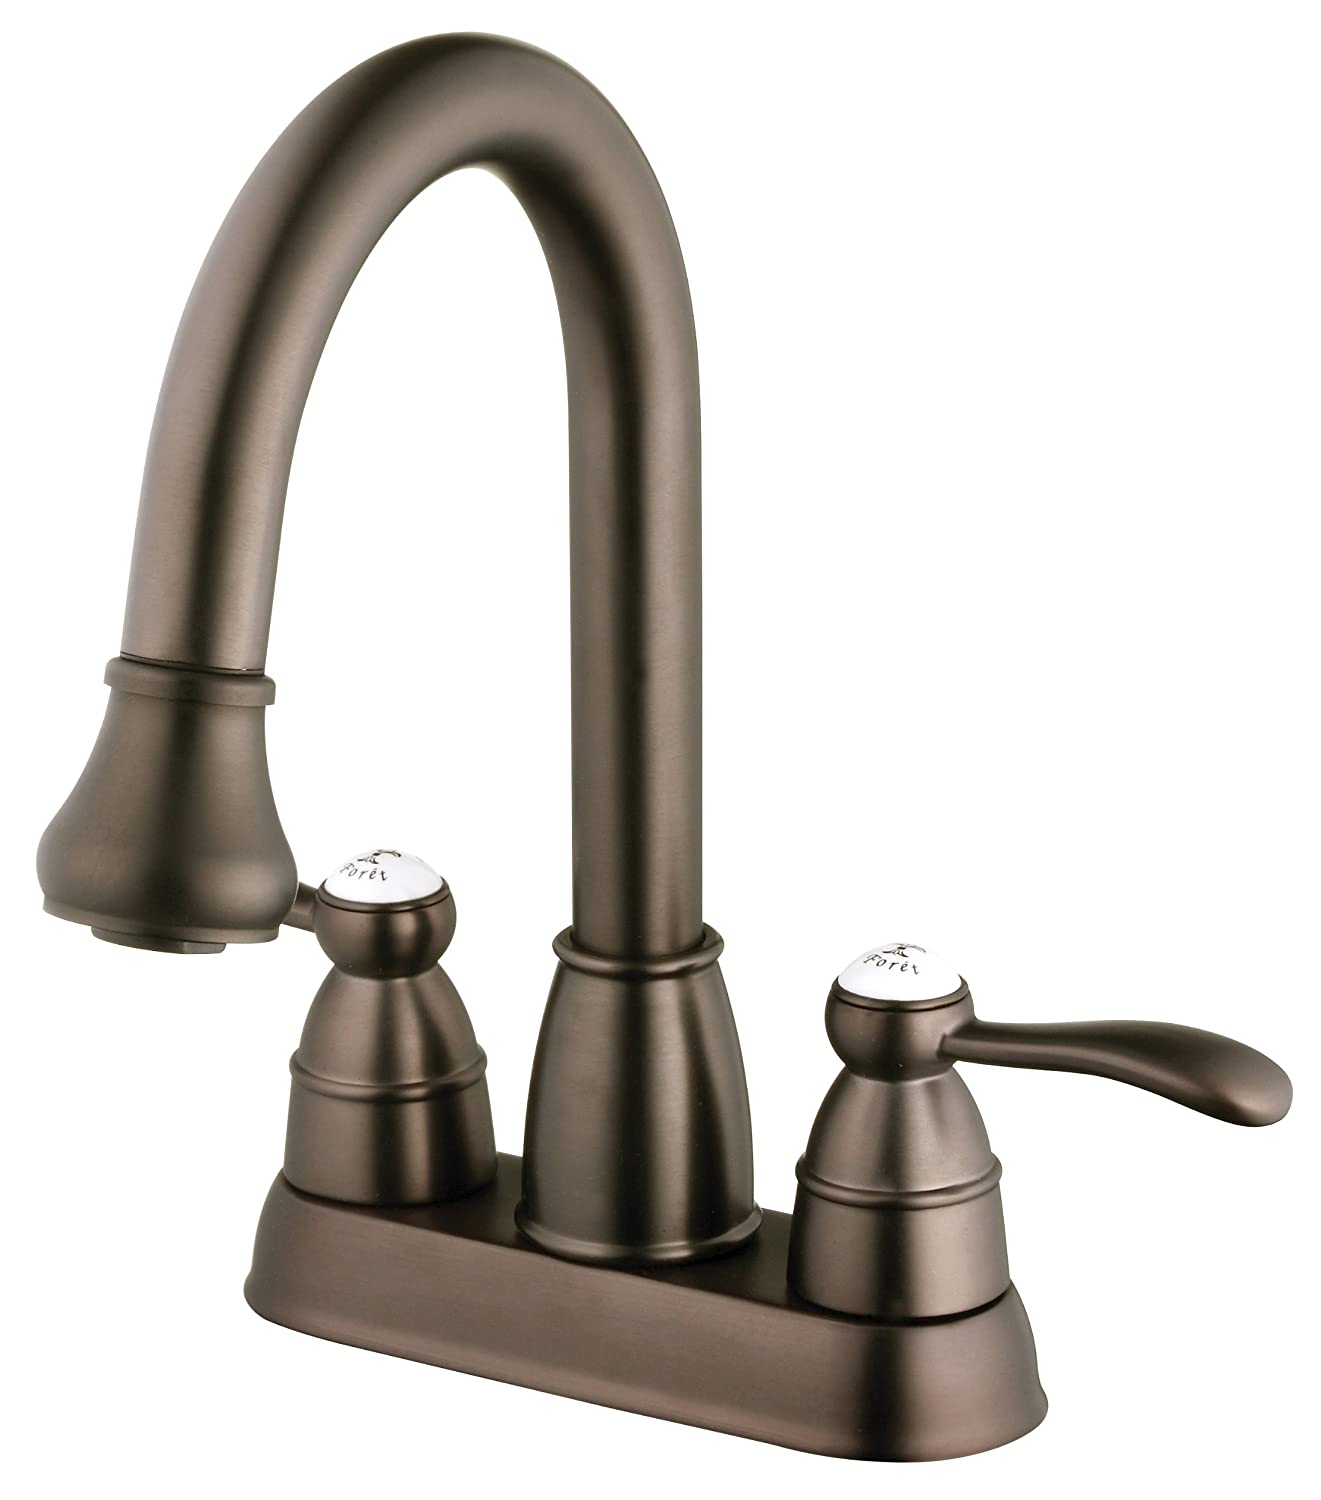 cr sprayer prices asp grey pull in best belle chrome for faucet faucets pullout showitems bath down fcts foret kit the handle kitchen single out